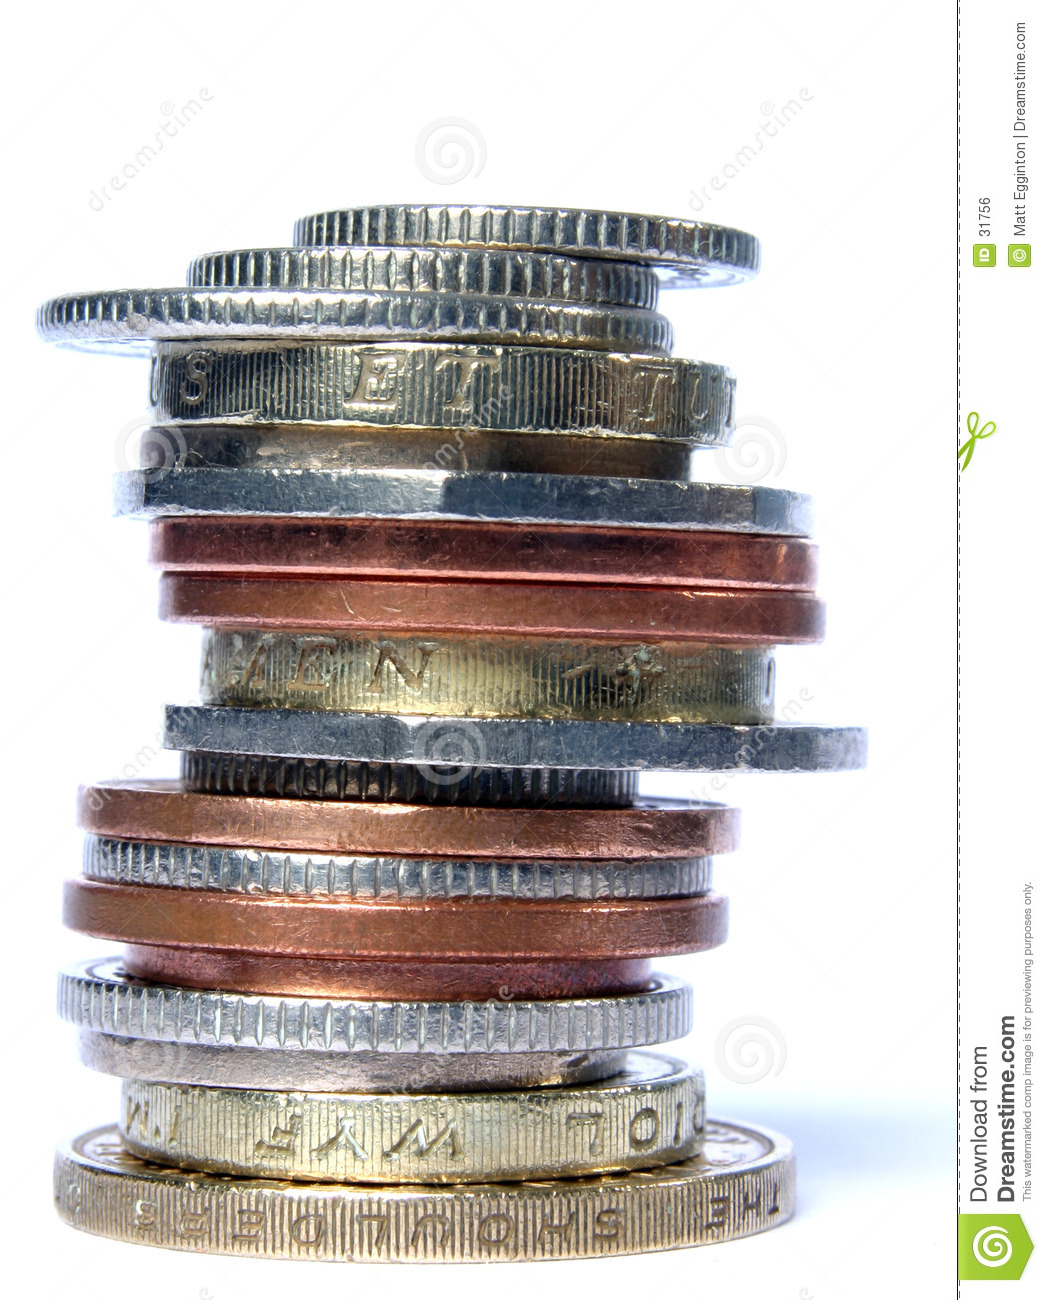 UK stack of mixed coins